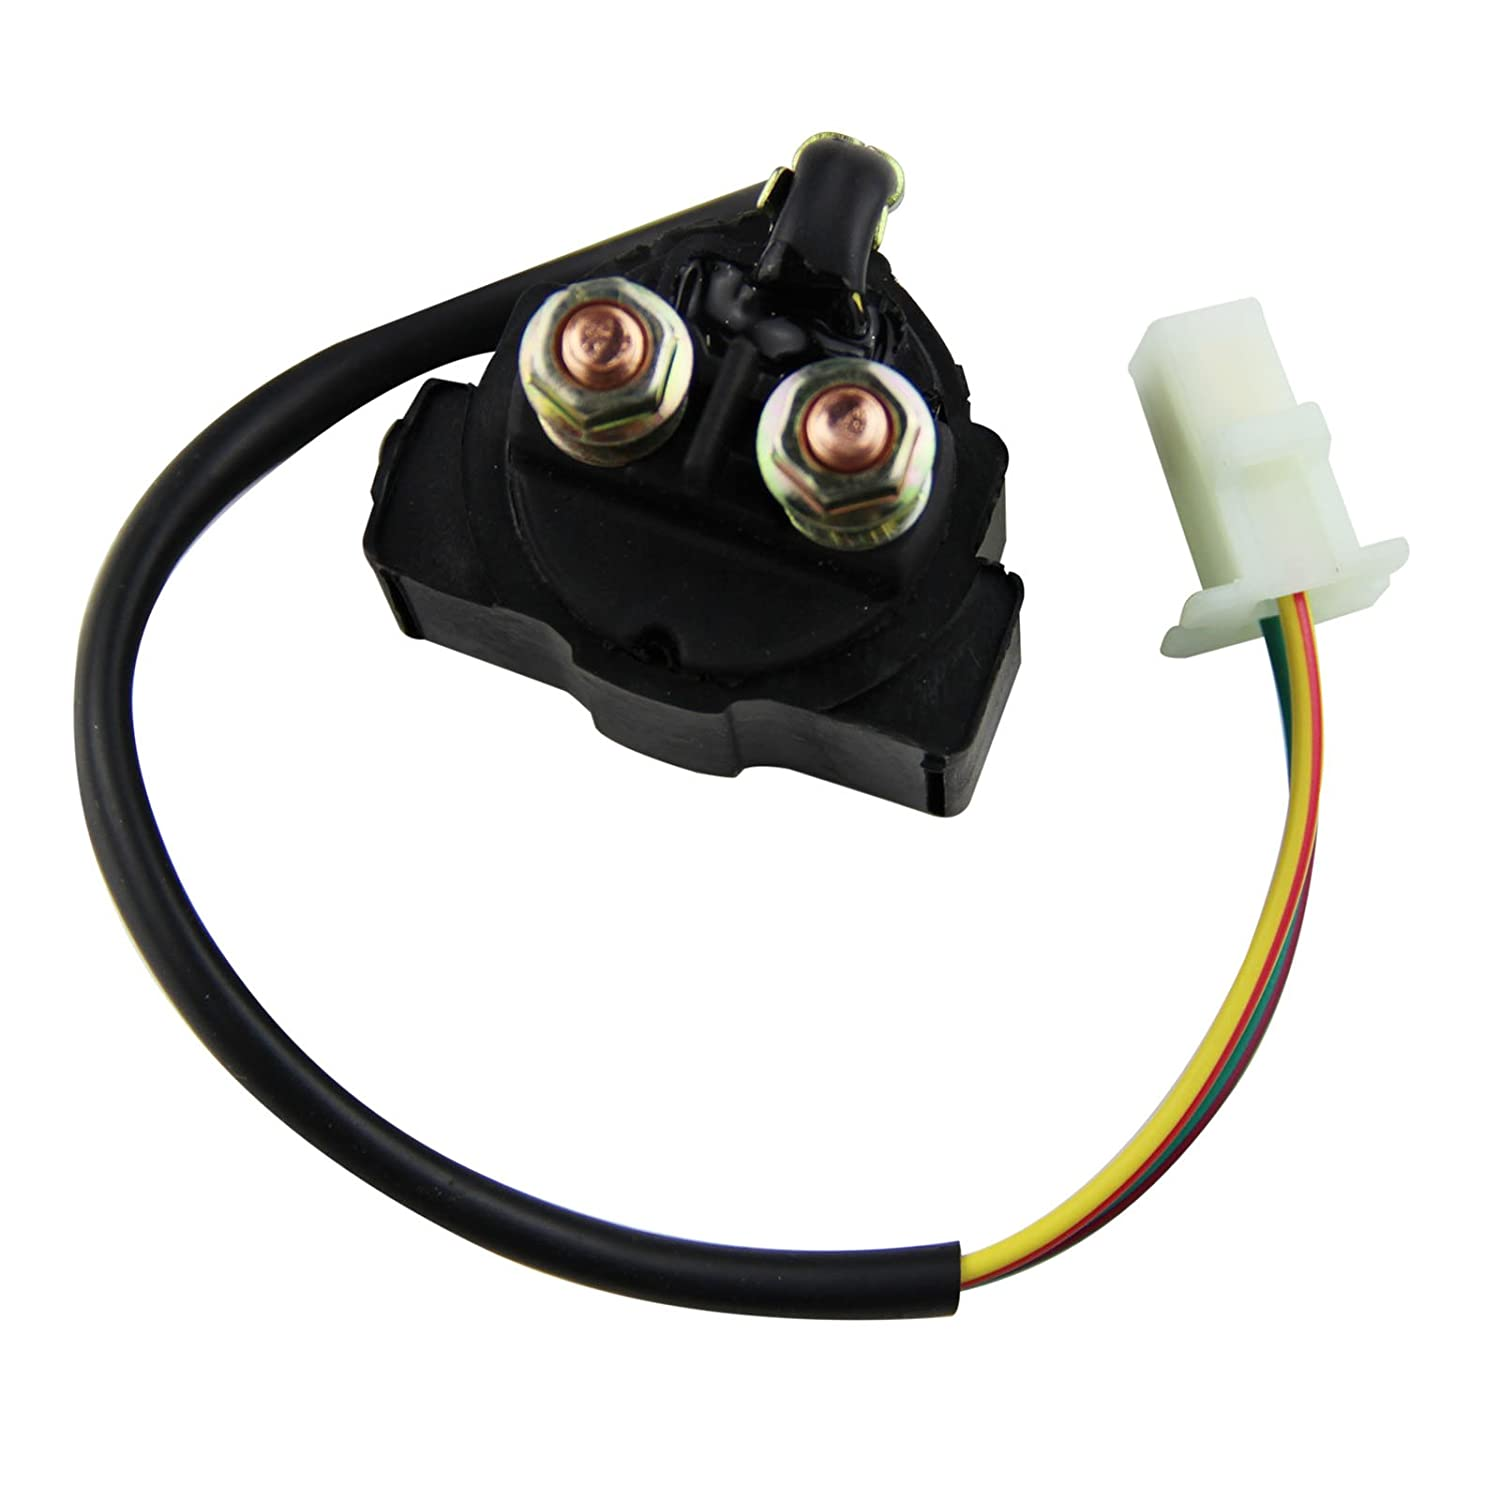 Staibc High Quality Starter Solenoid Relay For Honda 300 Trx Atv Wiring Diagram 1991 Fourtrax 1988 1989 1990 1992 1993 1994 1995 1996 1997 1998 1999 2000 Automotive